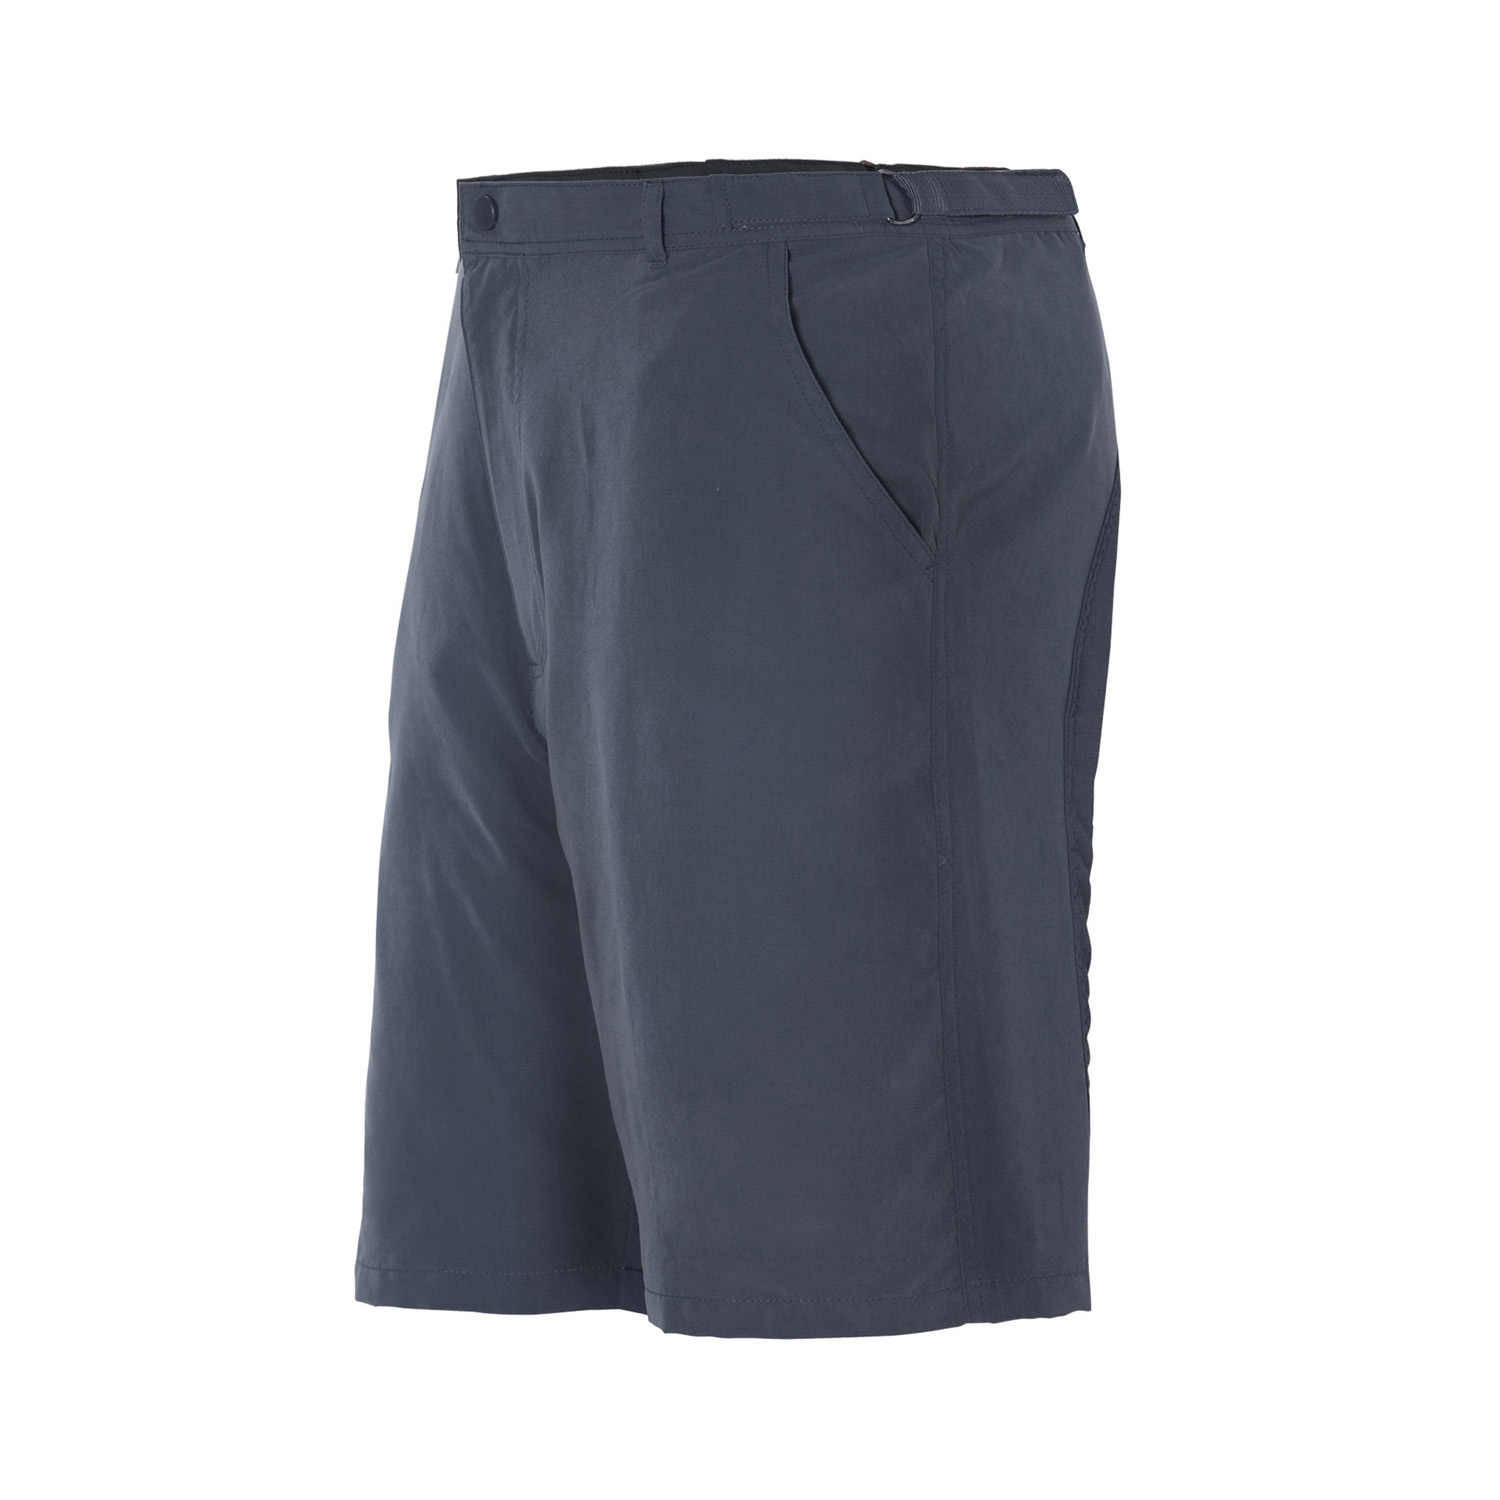 SLAM HISSAR SHORTS (S140013)